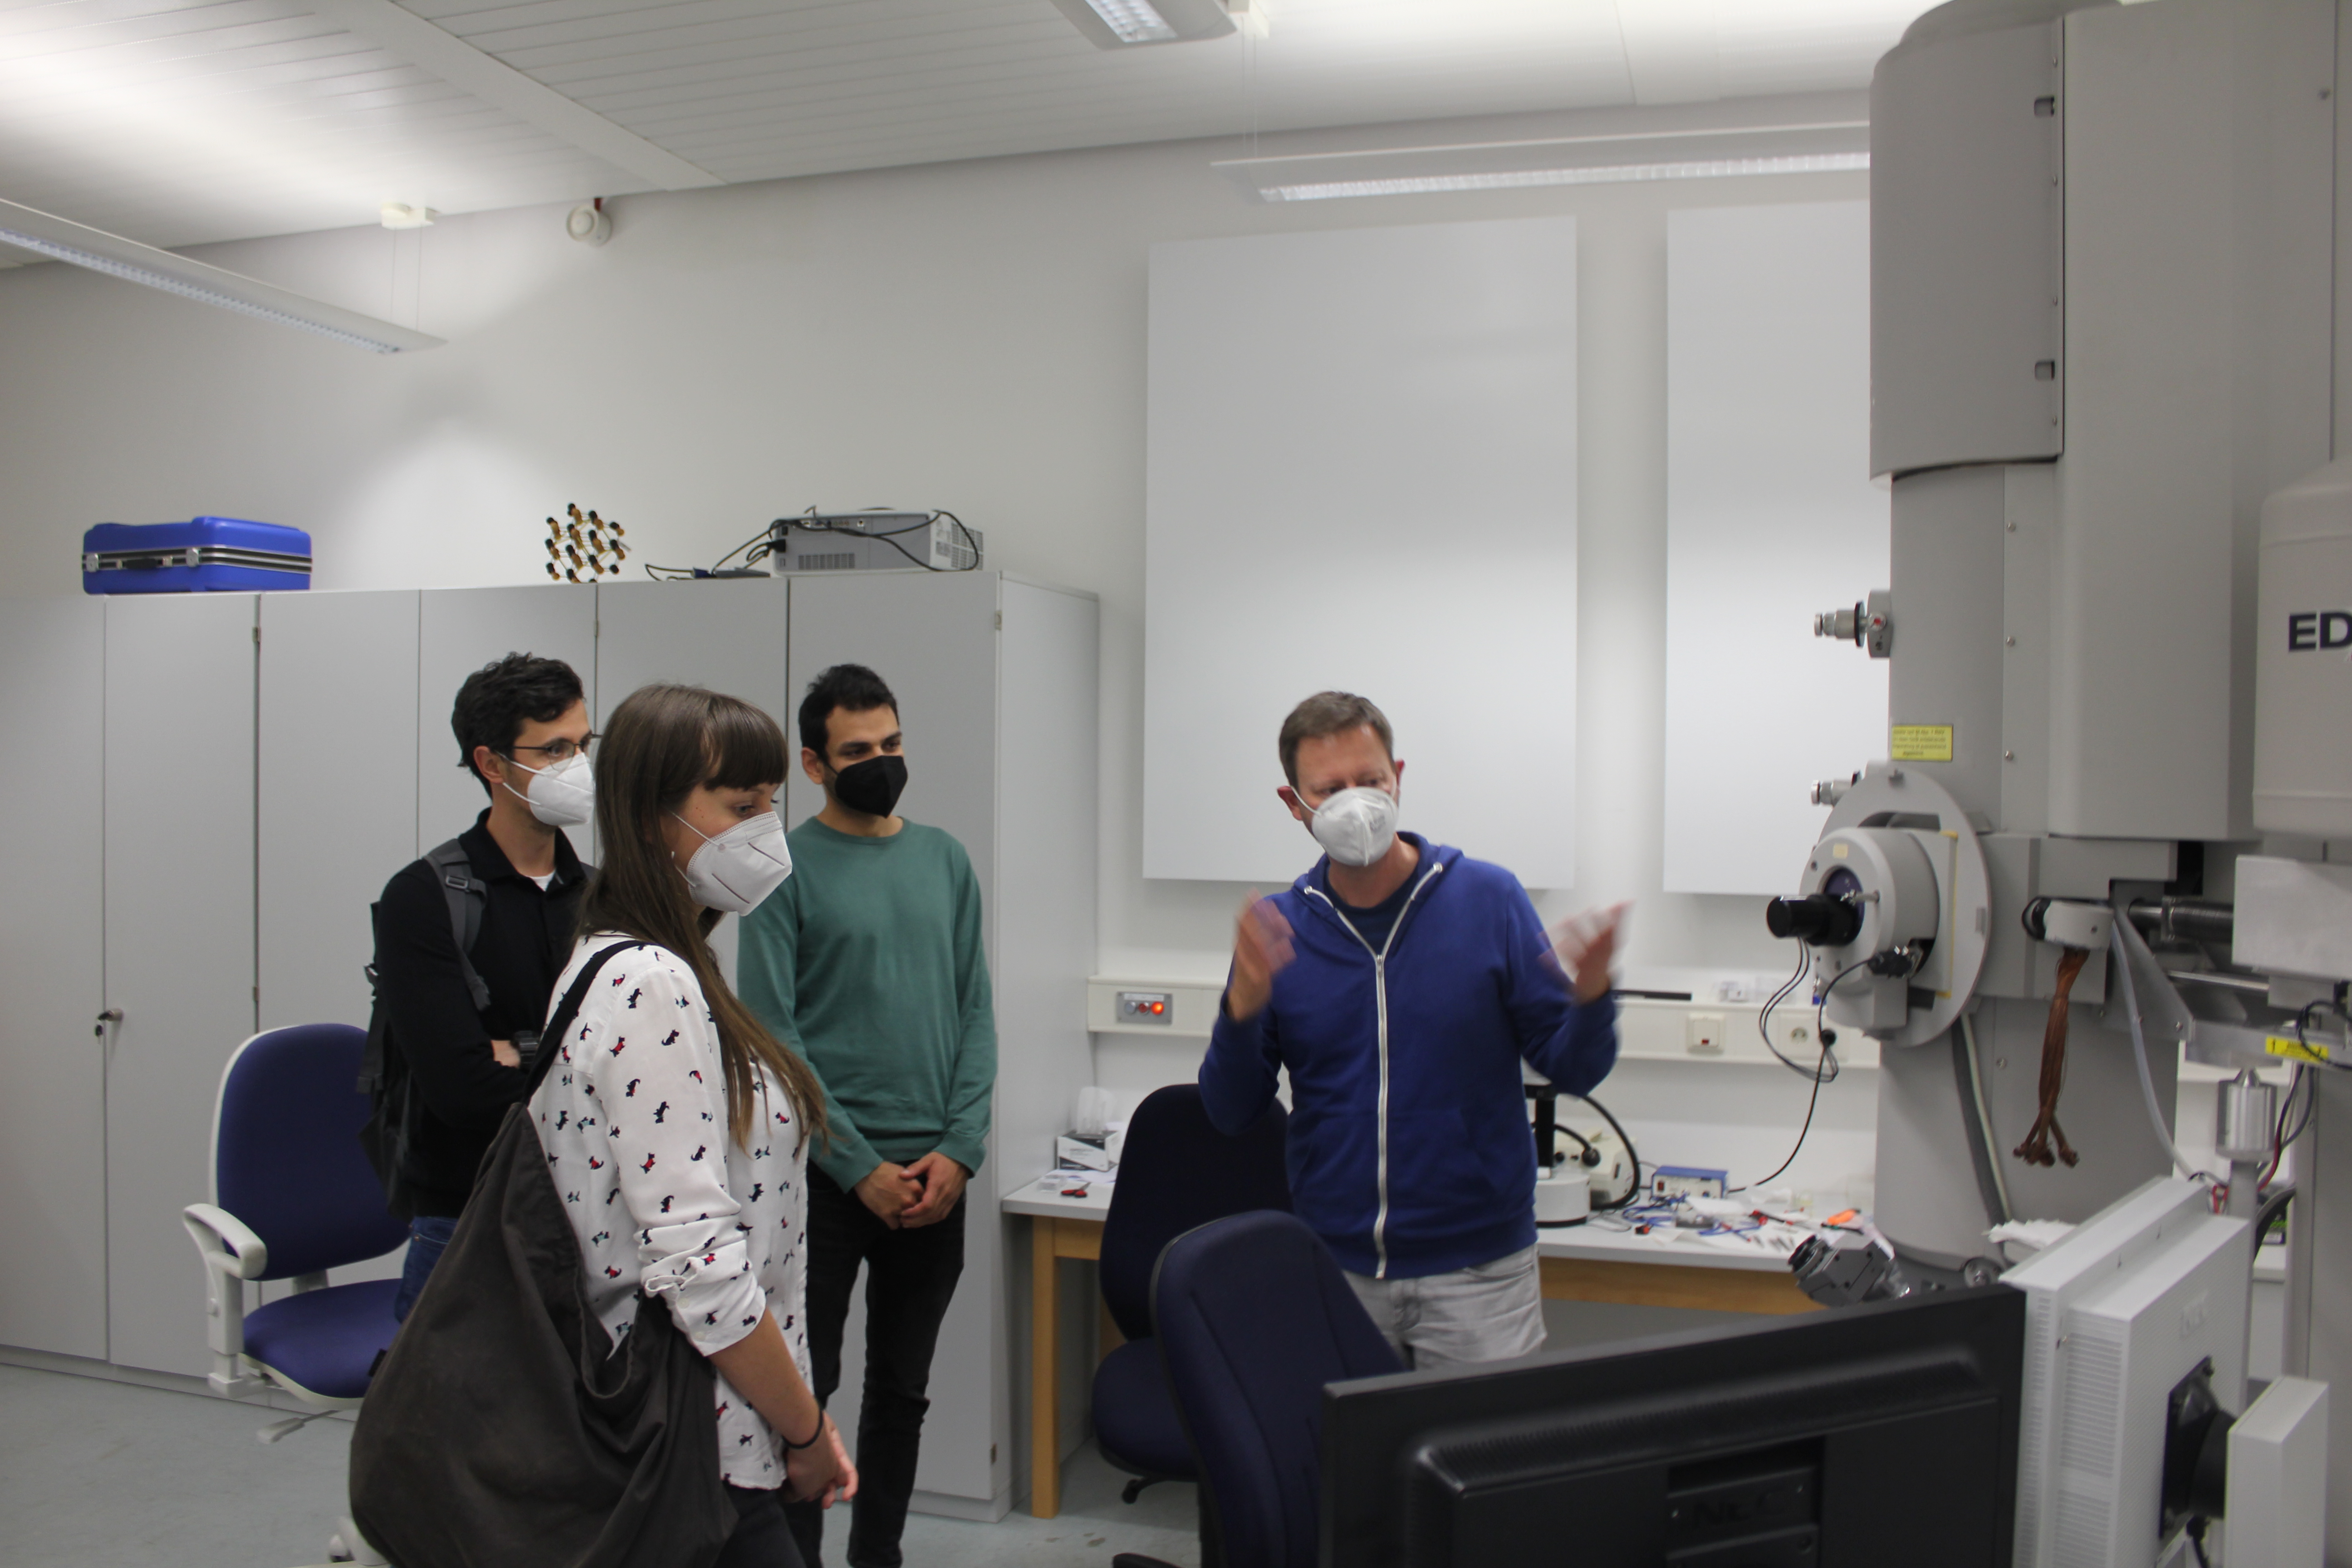 Dr Ulrich Schuermann and Khurram Saleem explain the function of the electron microscope and the possible analysis